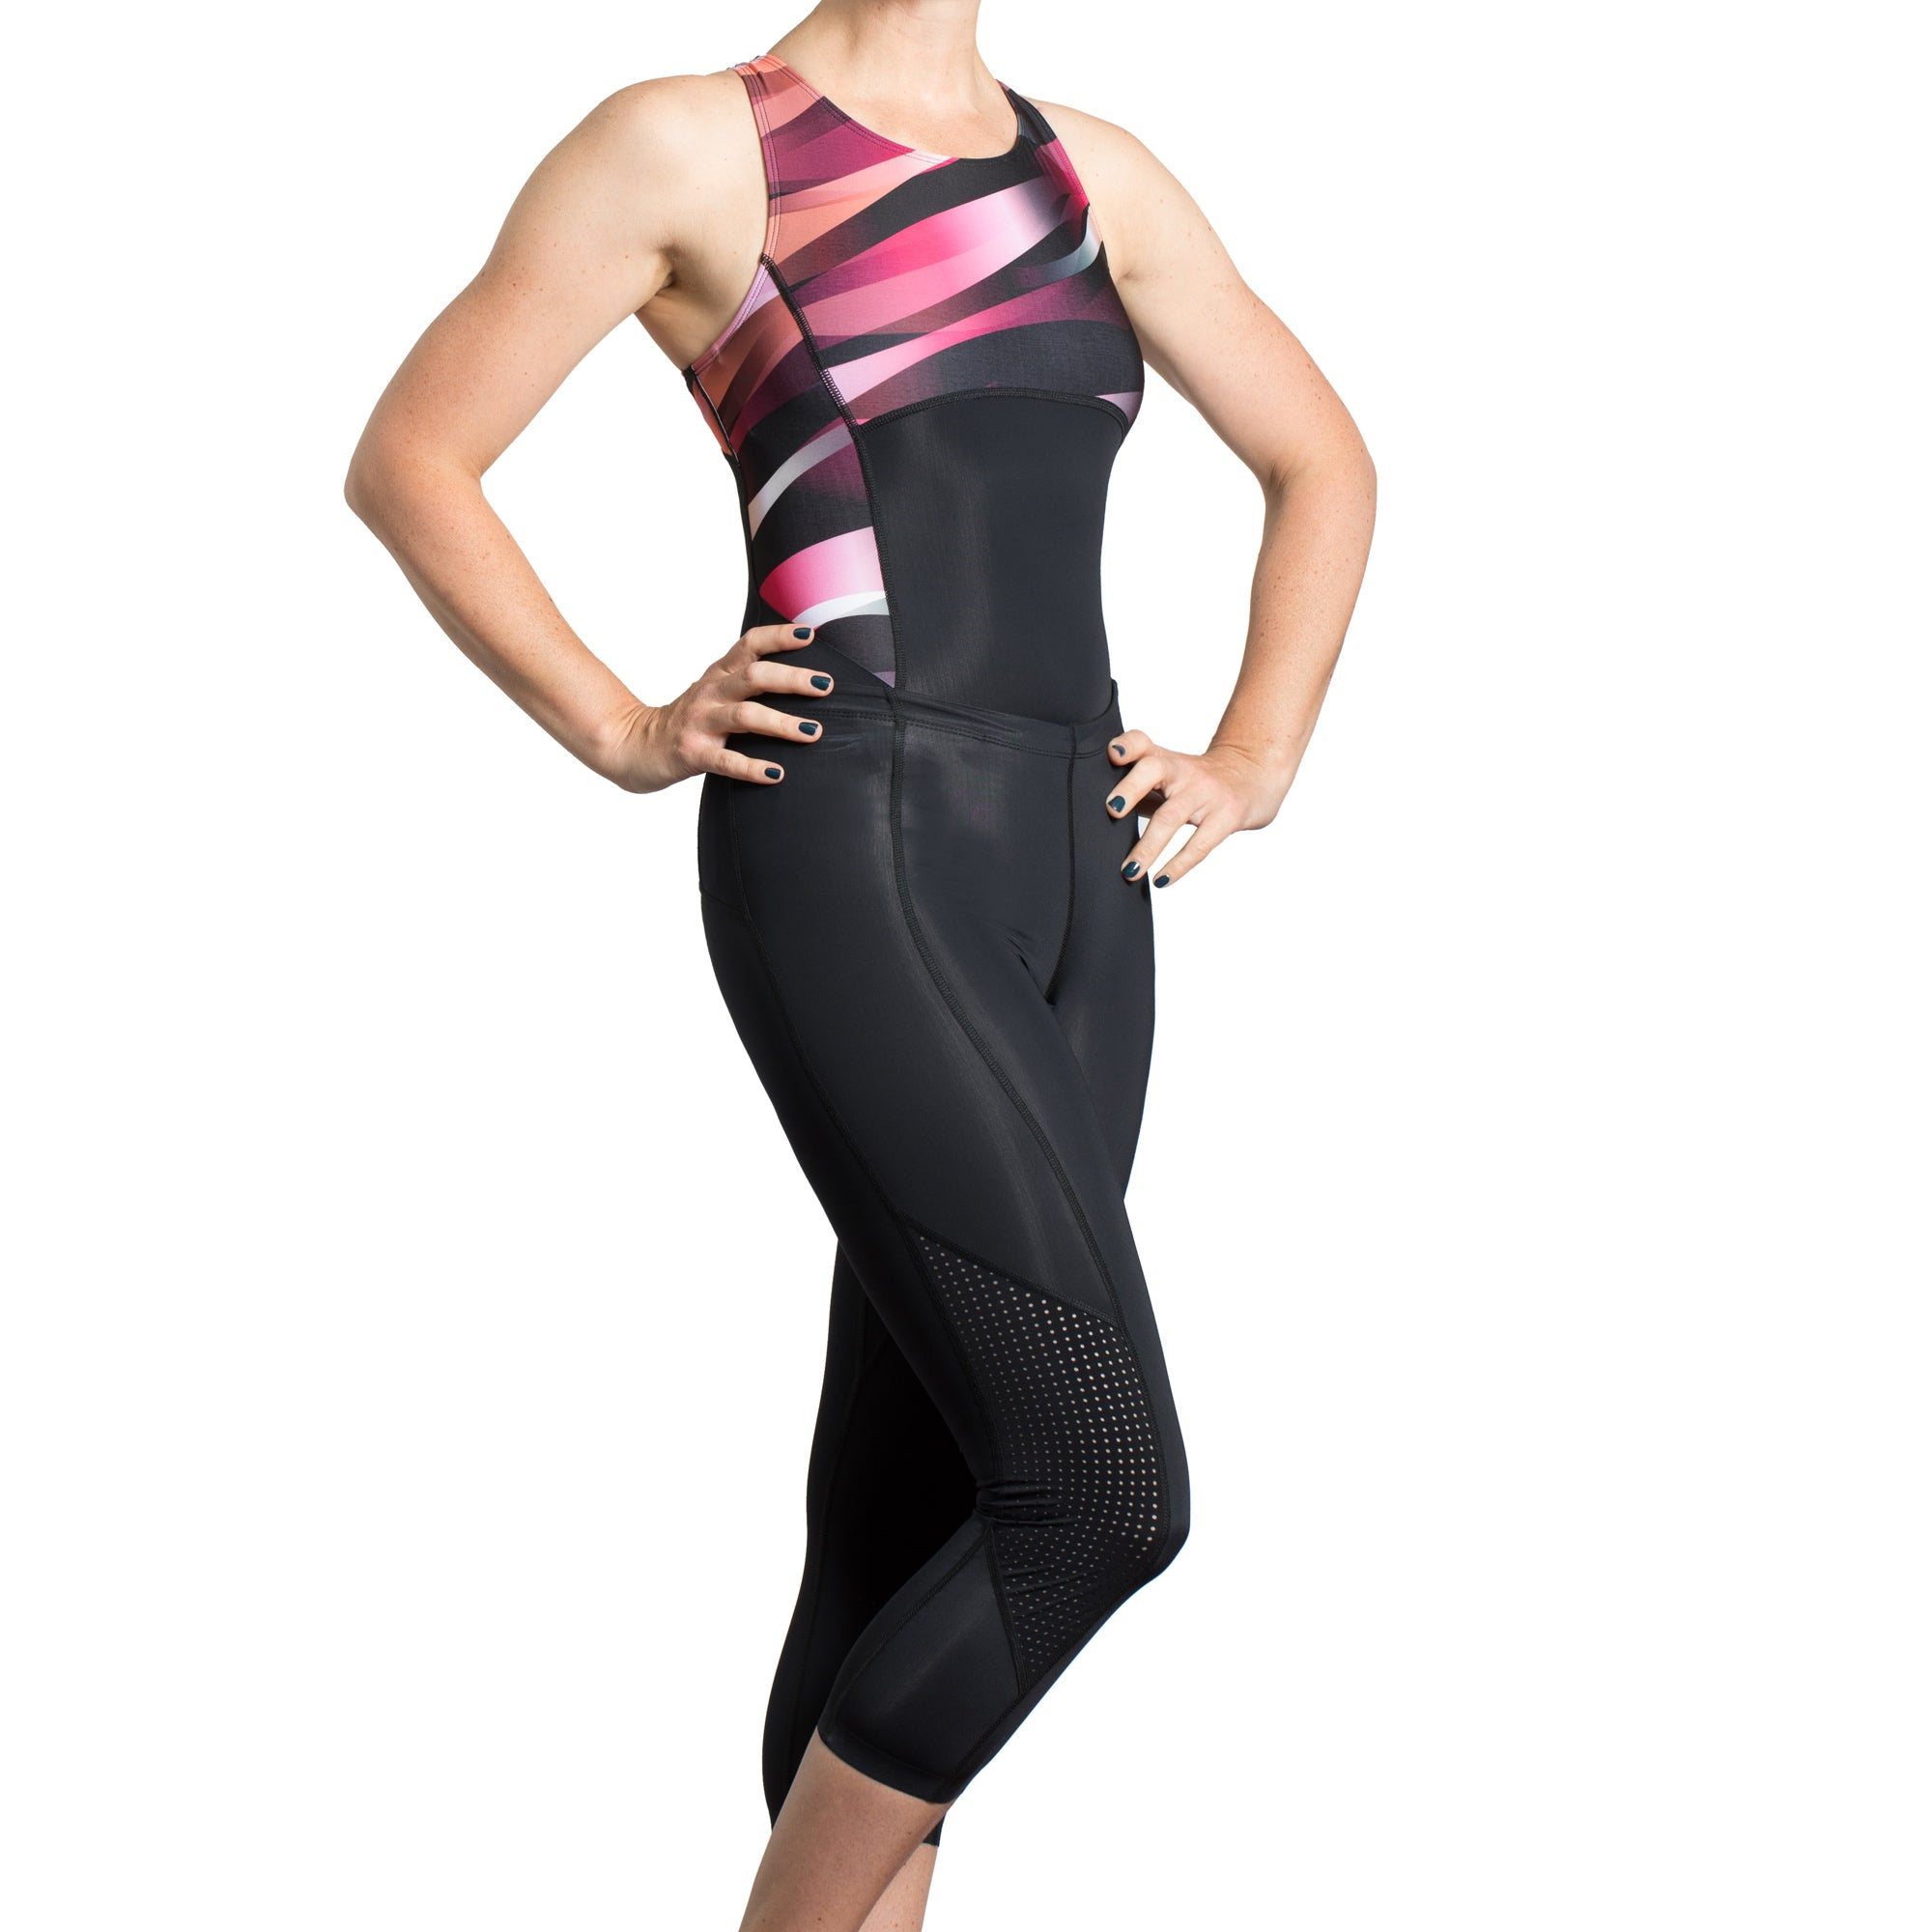 Trigirl two-piece triathlon suit and over the knee swimsuit